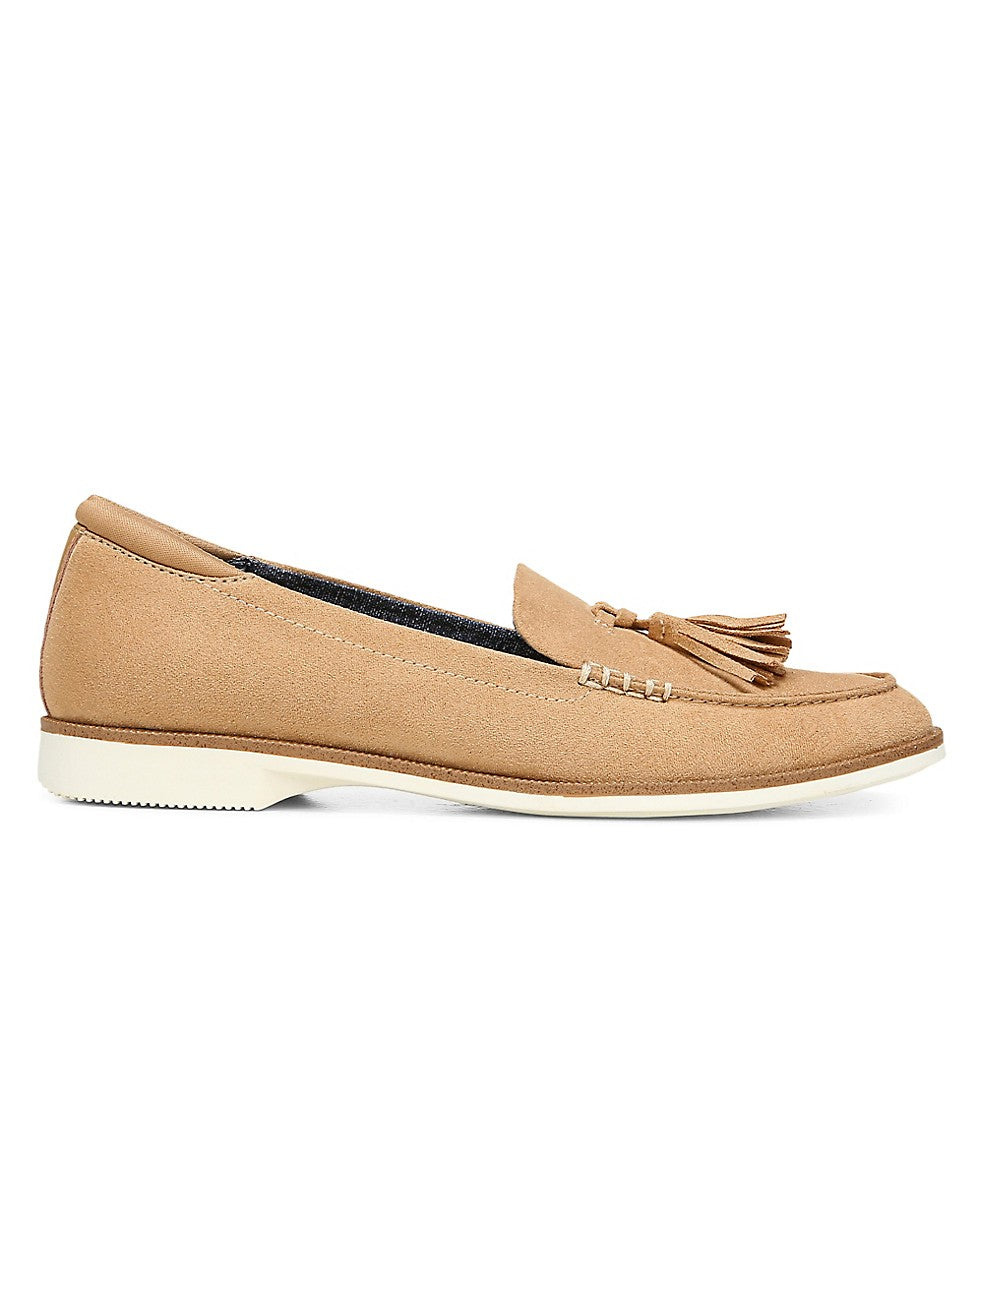 American Lifestyle Coralie Loafers